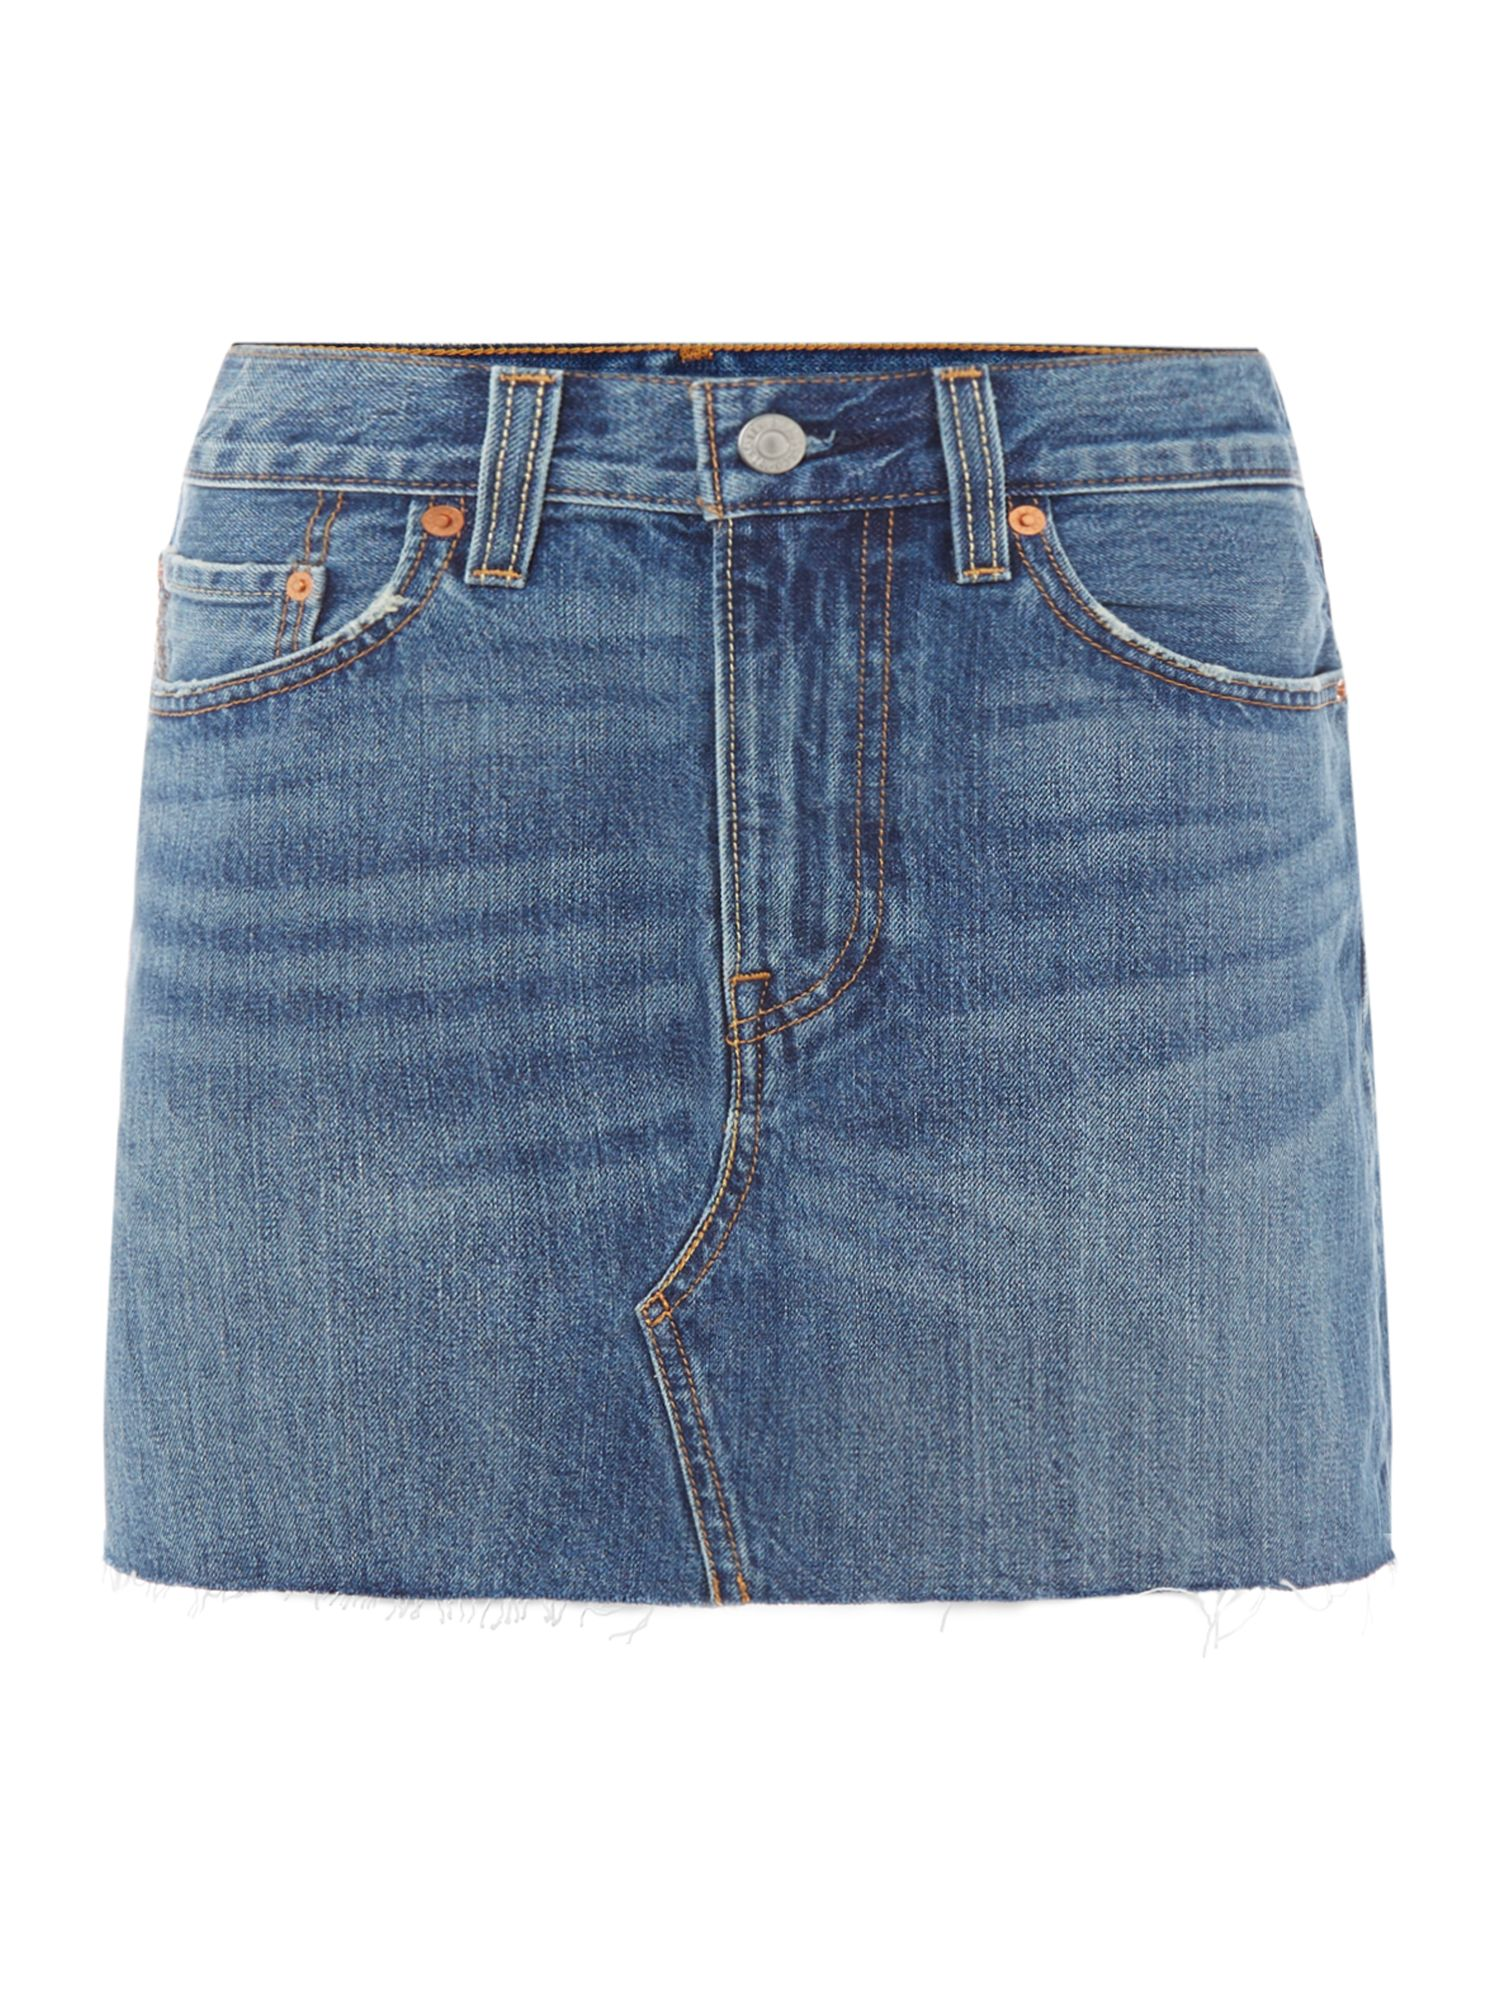 Levi's Denim Mini Skirt With Raw Hem In War Torn Blues, Denim Mid Wash